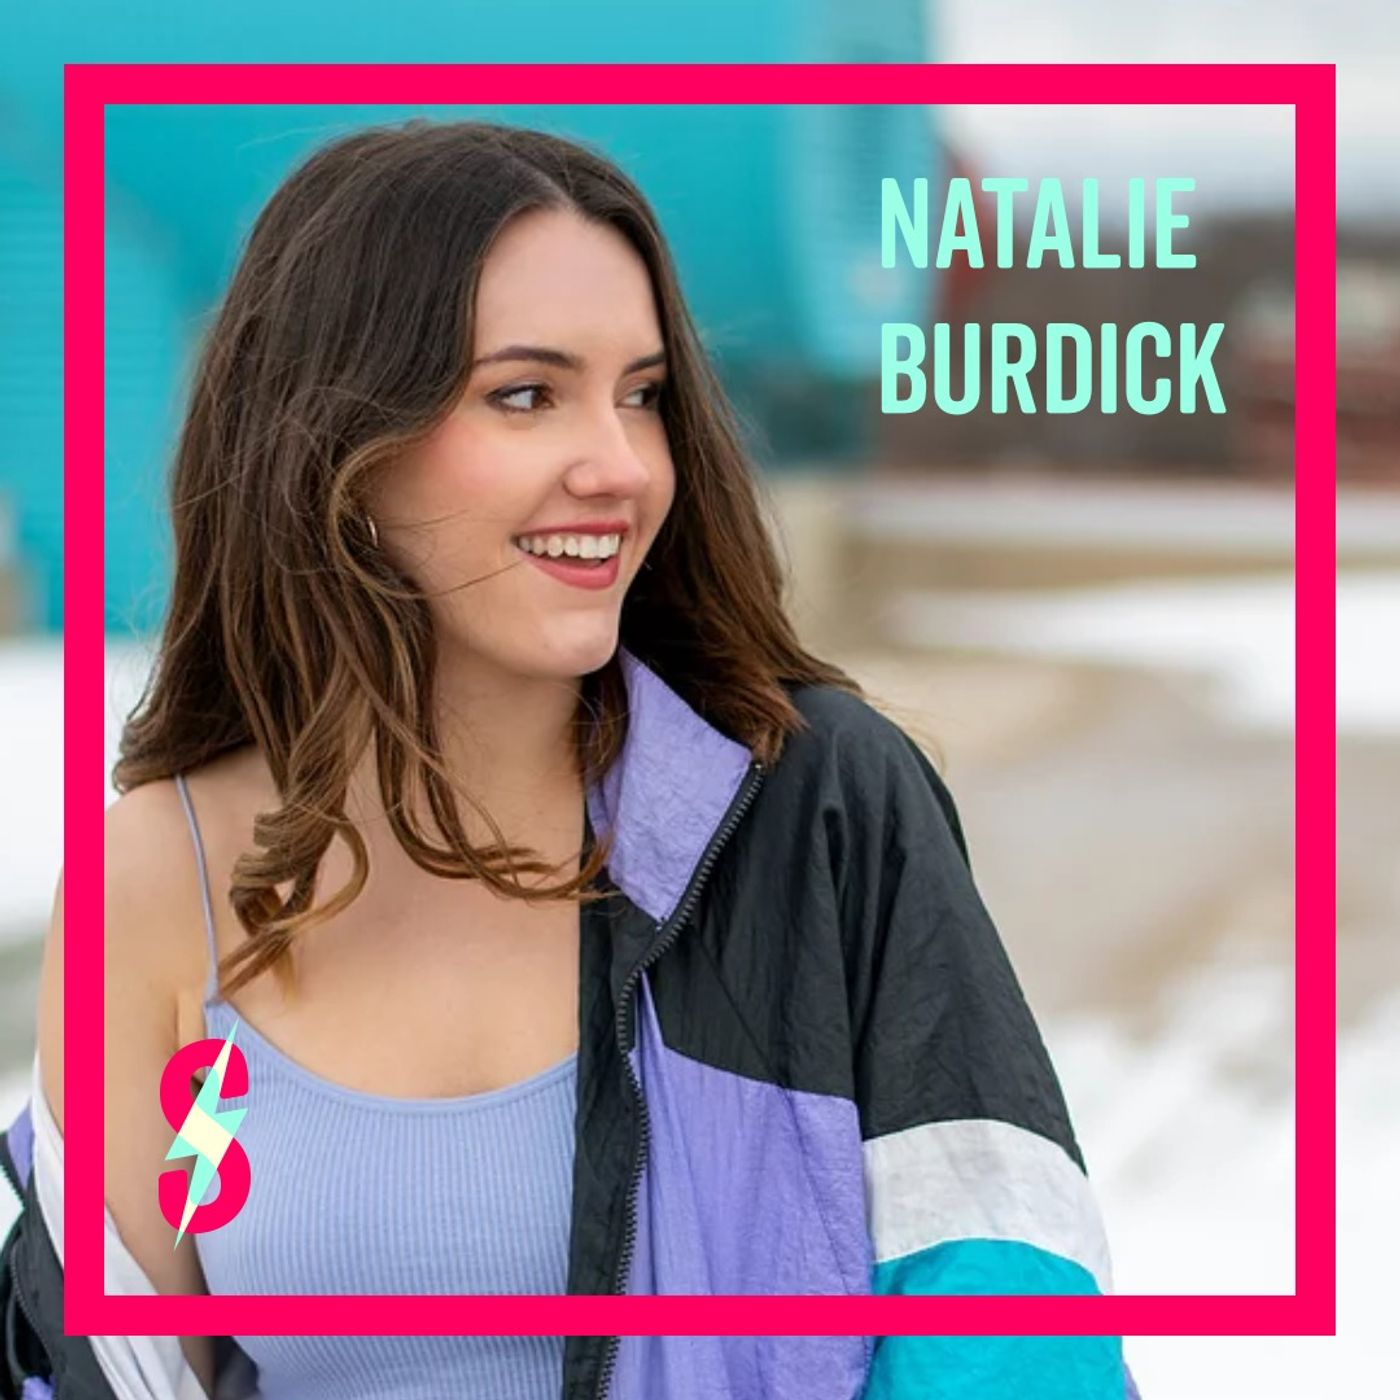 Natalie Burdick's Spark Is Too Many Cooks: Um... What Did I Just See?